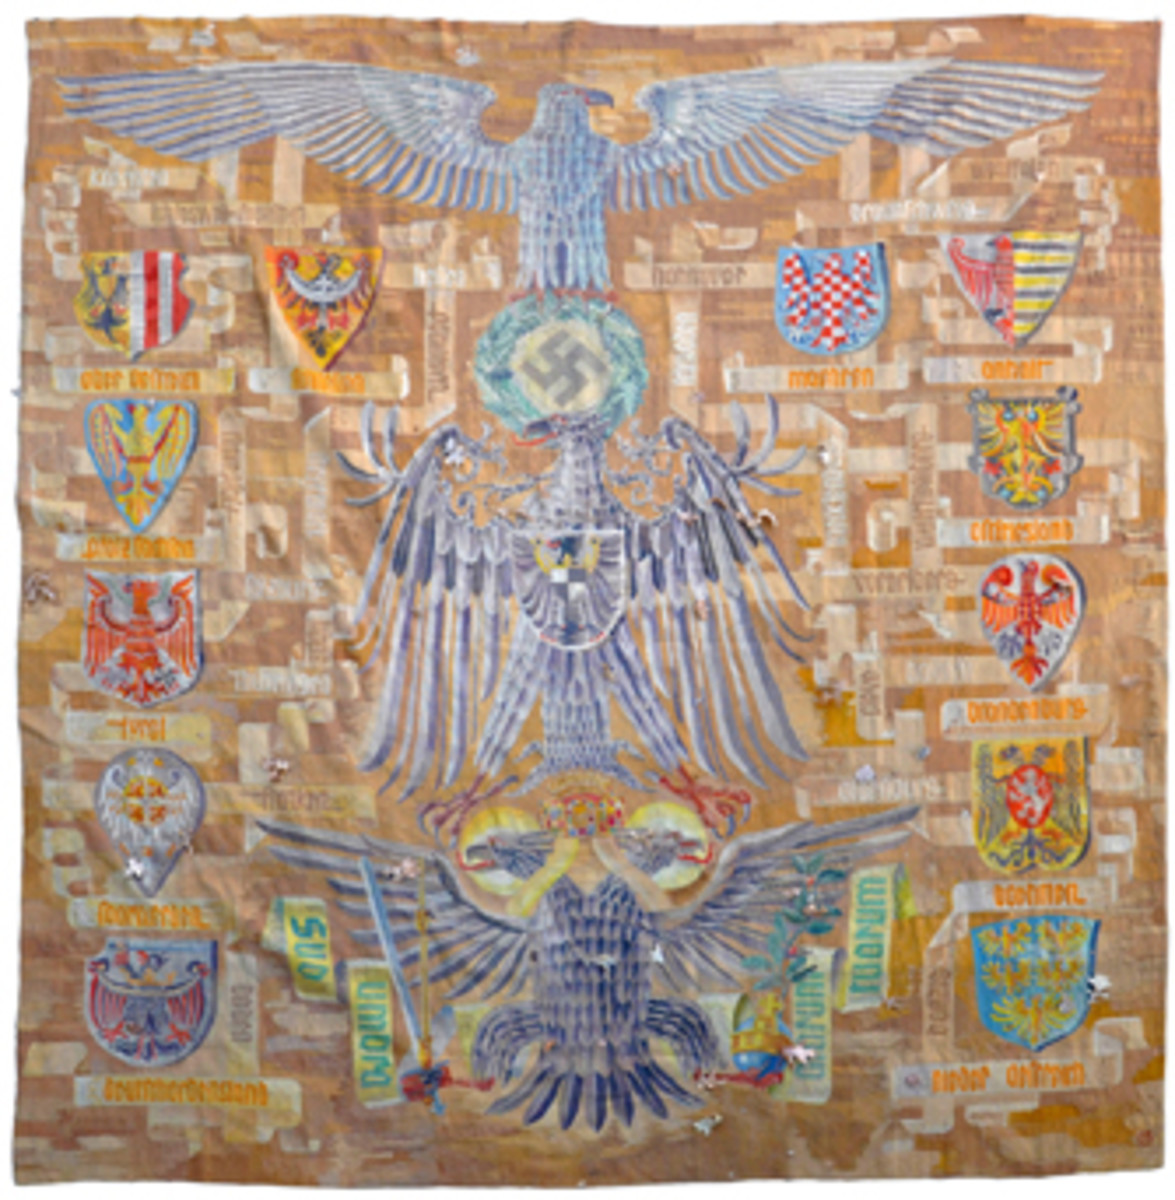 Monumental German World War II Reichstag National Culture Gobelin tapestry, 11 feet 10 inches by 10 feet 2 inches (MB: $25,000).